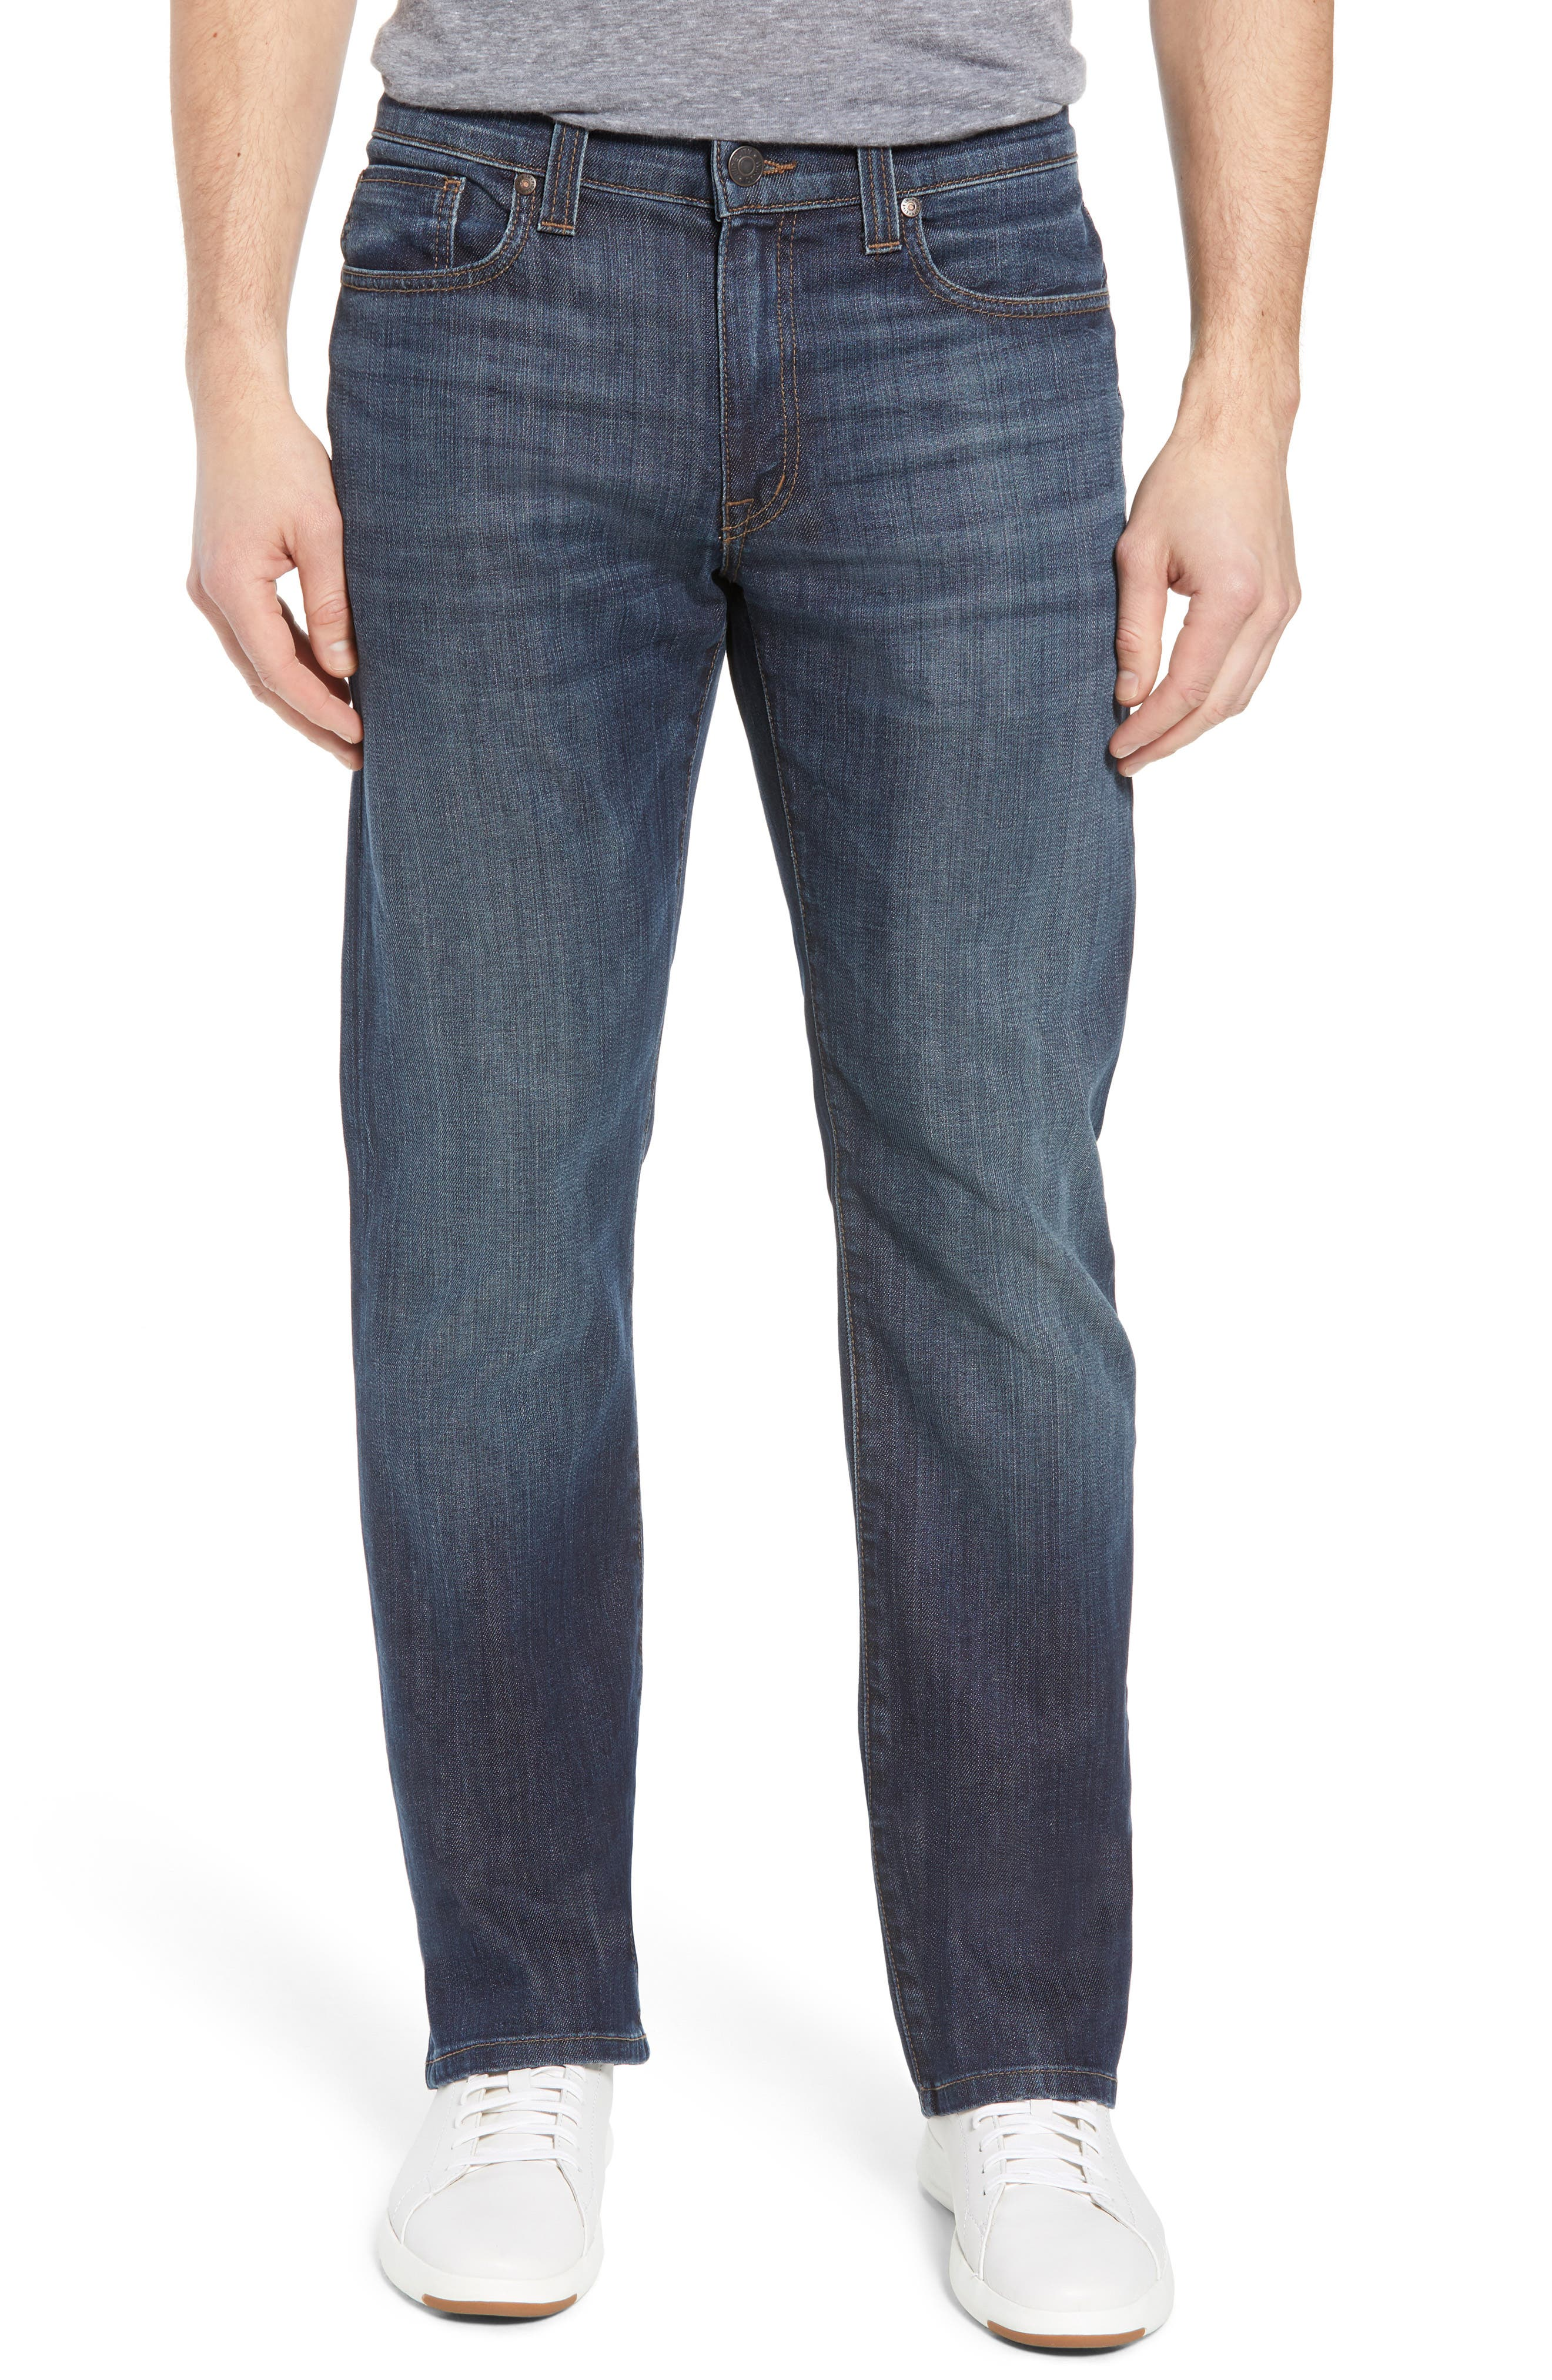 50-11 Relaxed Fit Jeans,                             Main thumbnail 1, color,                             400